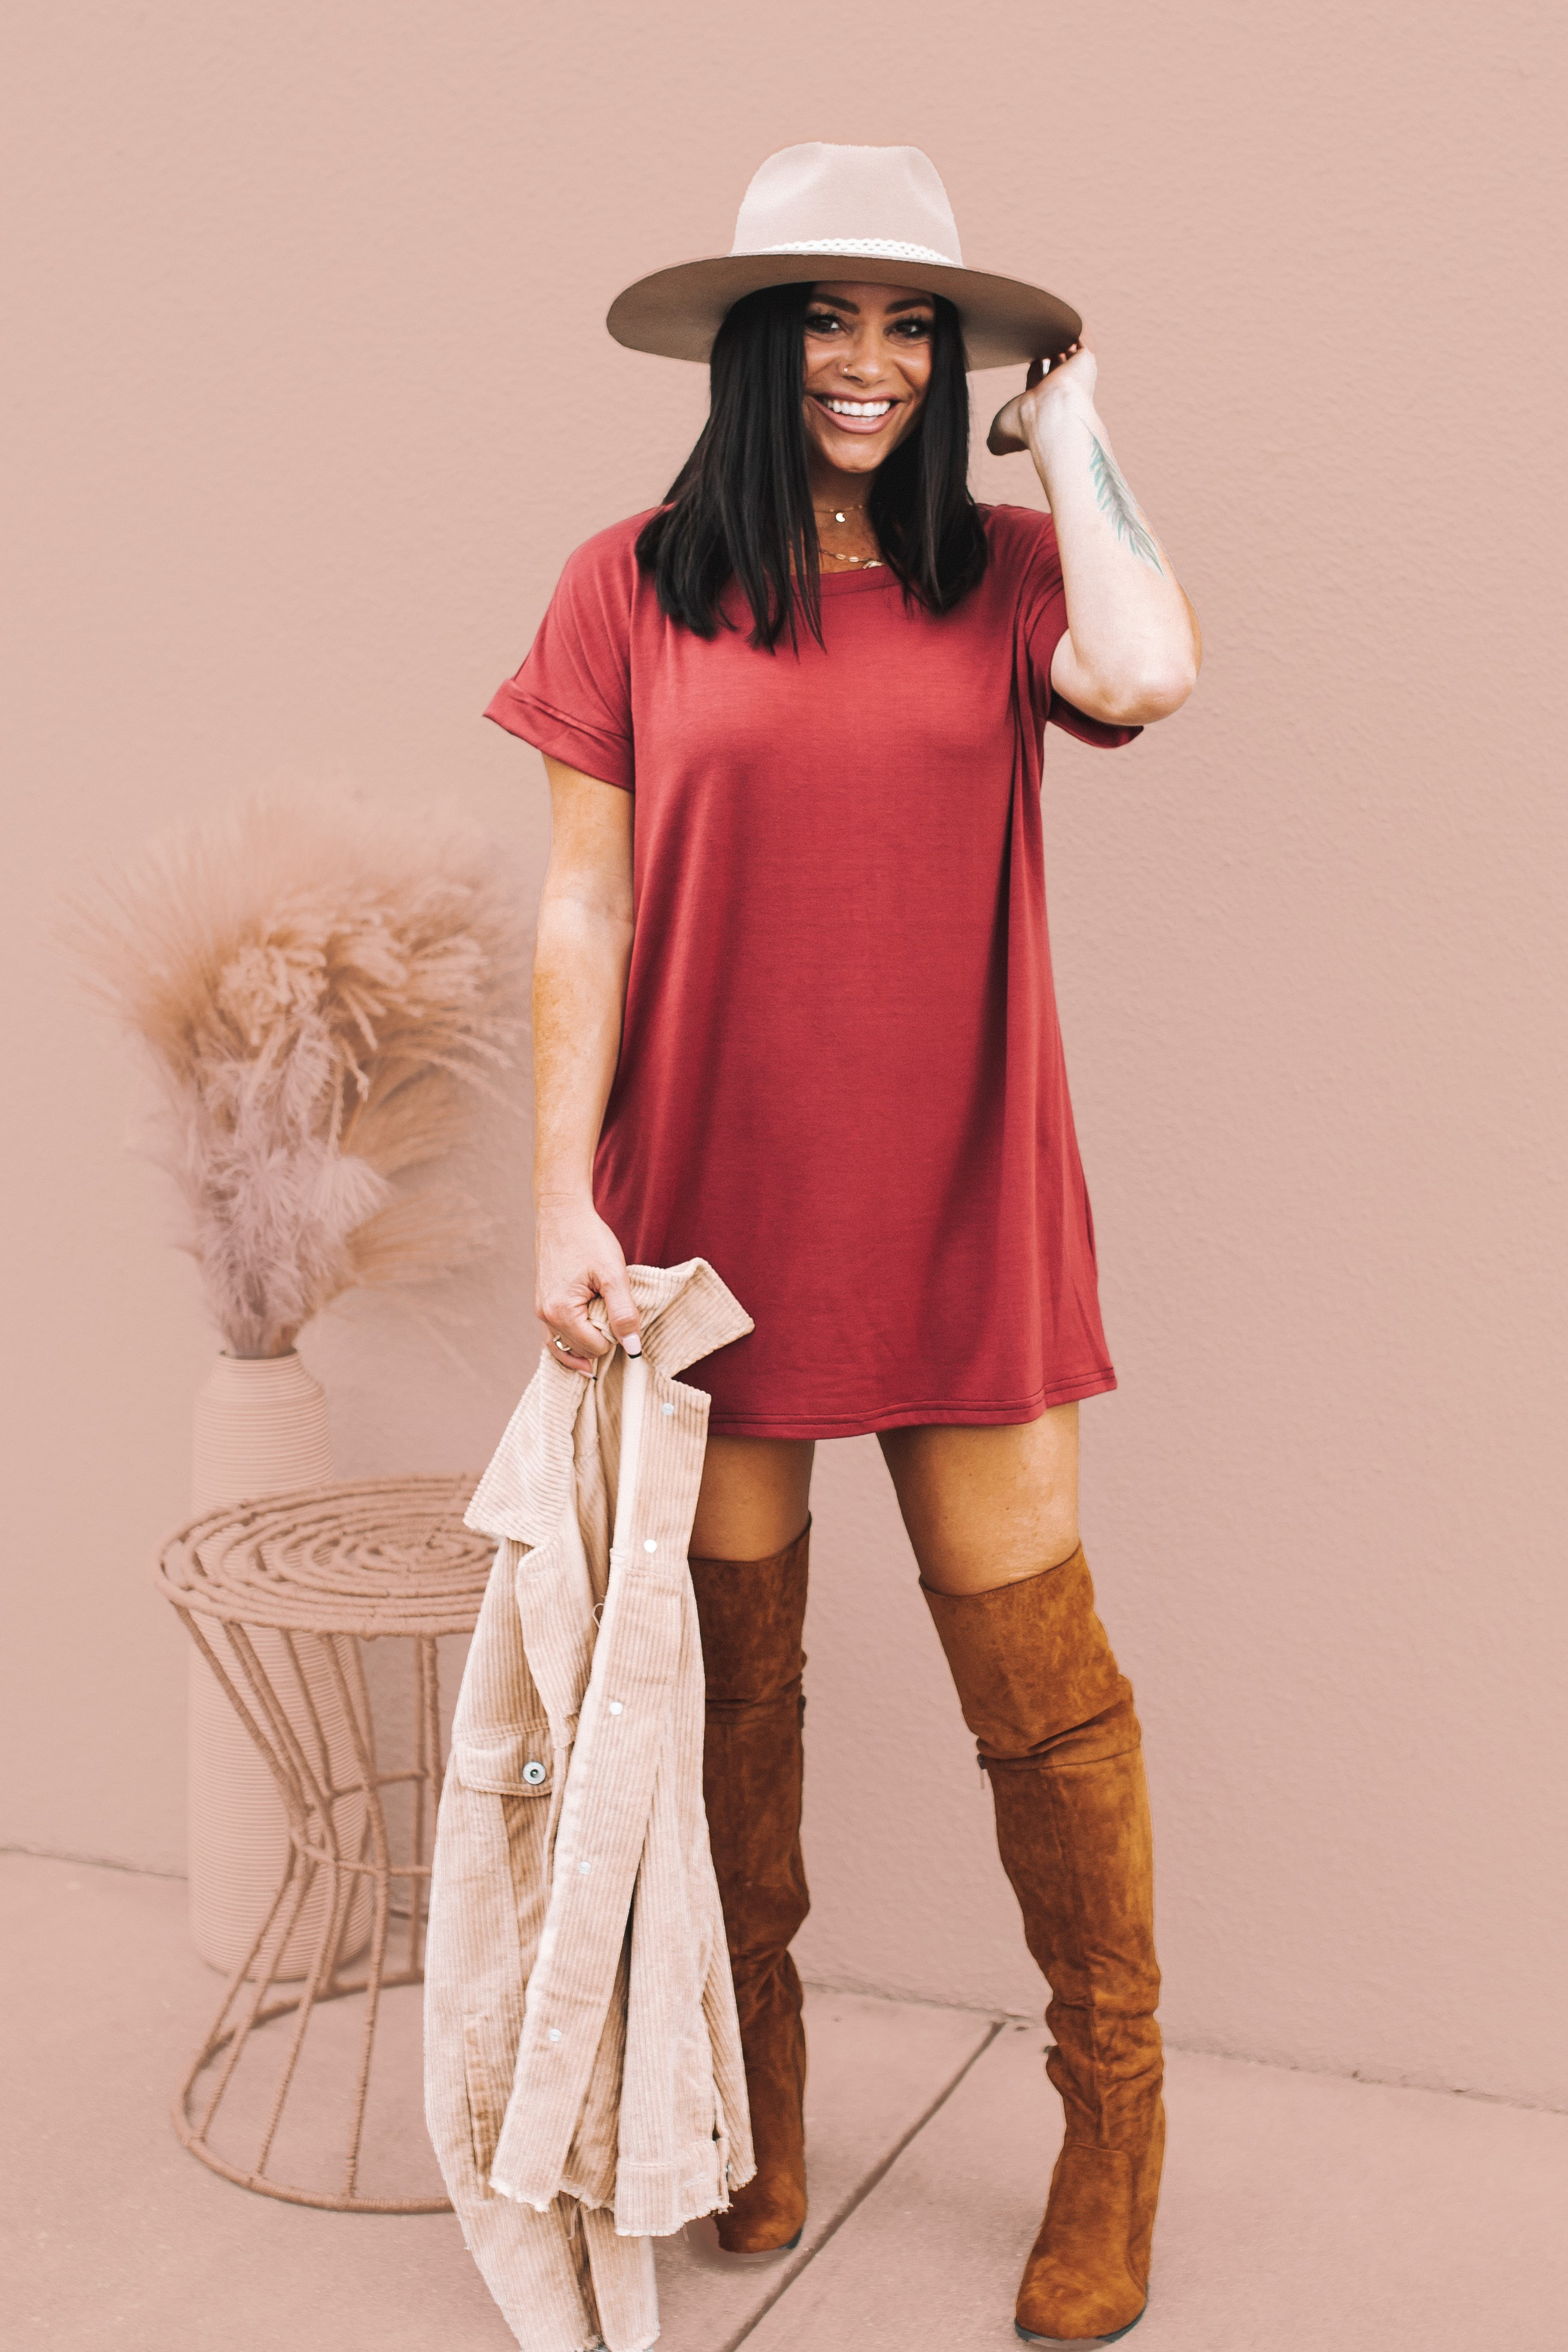 MAVERICK EXCLUSIVE! CRANBERRY TUNIC. DROP SHOULDER SHORT SLEEVES. SOFT, LIGHTWEIGHT FABRIC. 95% POLYESTER, 5% SPANDEX. AMANDA IS 5'7 SIZE 2, WEARING A SMALL. STEPHANIE IS SIZE 4 WEARING A SMALL. XS 0-2 S 4-6 M 8-10 L 10-12 XL 14-16